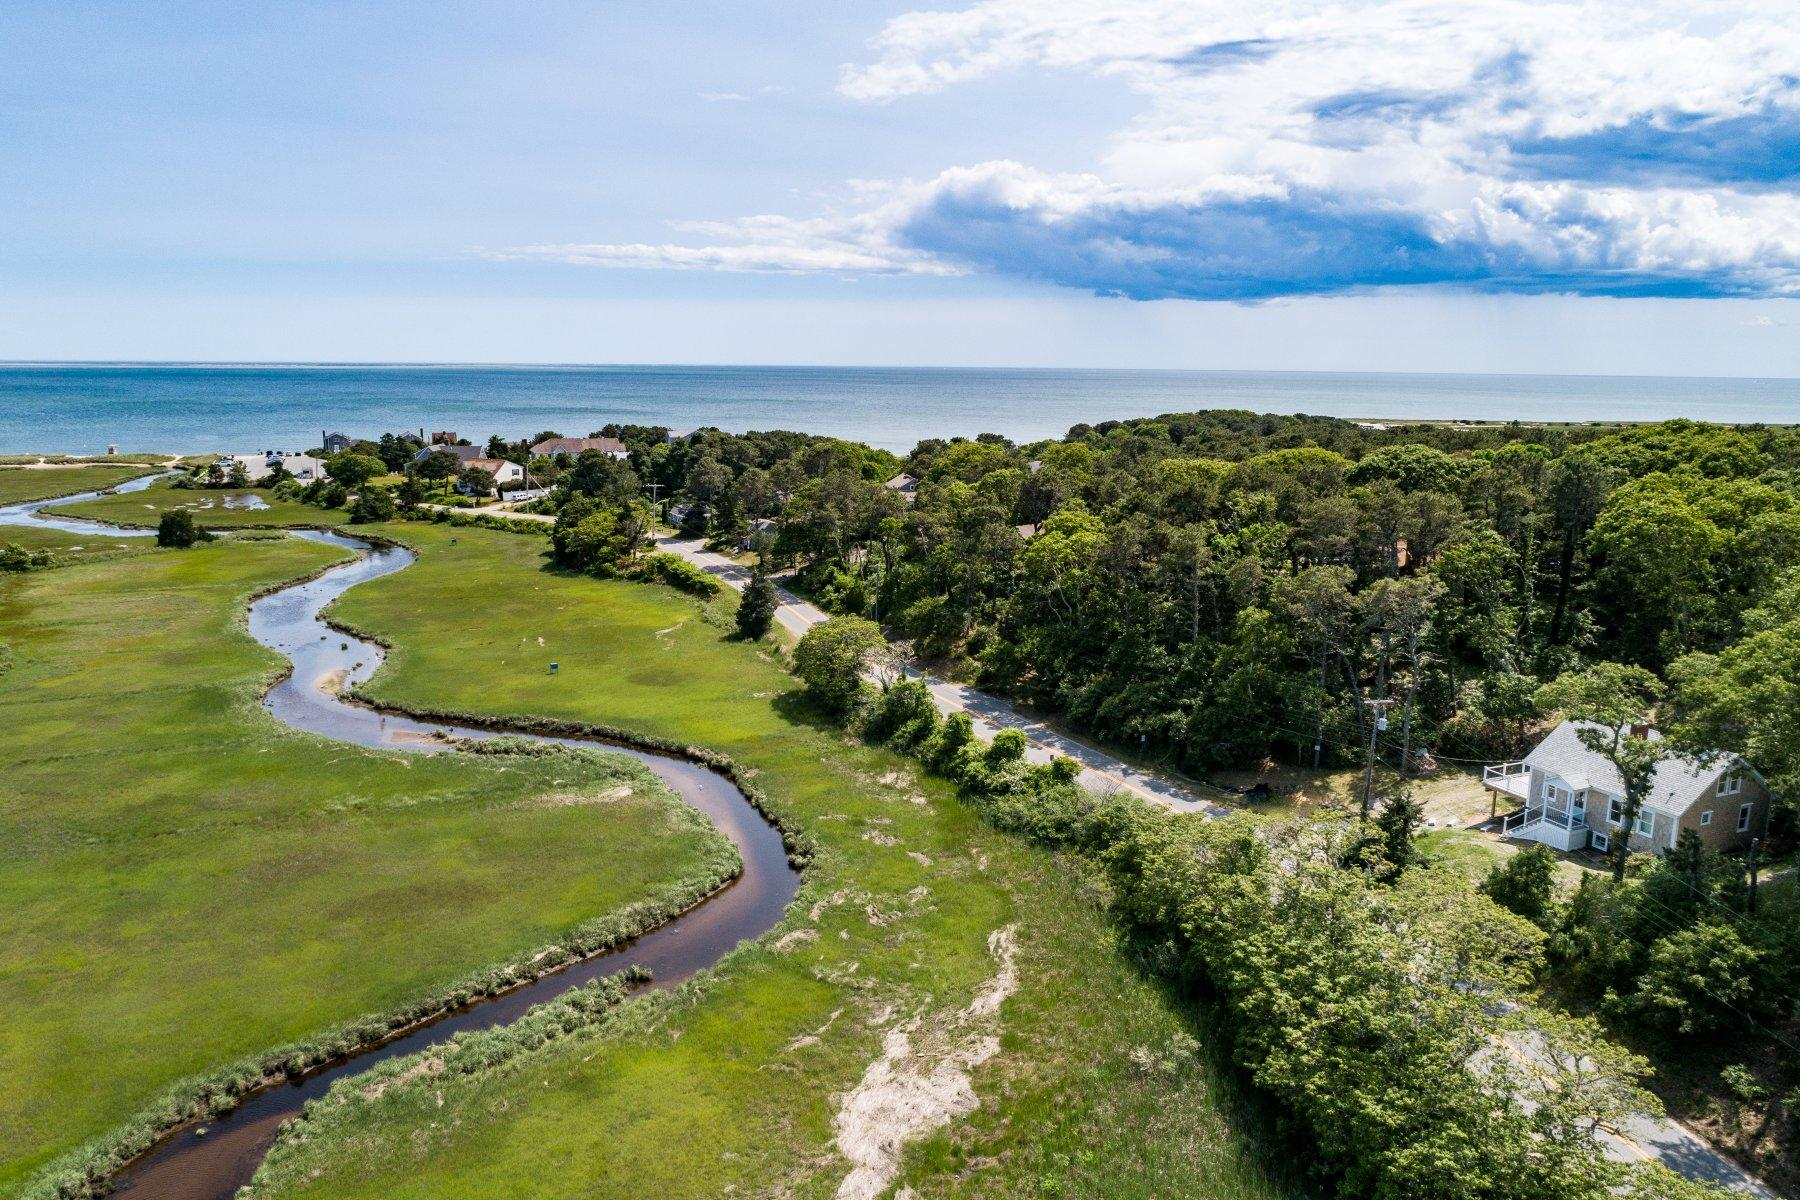 Single Family Homes for Sale at 314 Cockle Cove Road, Chatham, MA 314 Cockle Cove Road Chatham, Massachusetts 02659 United States